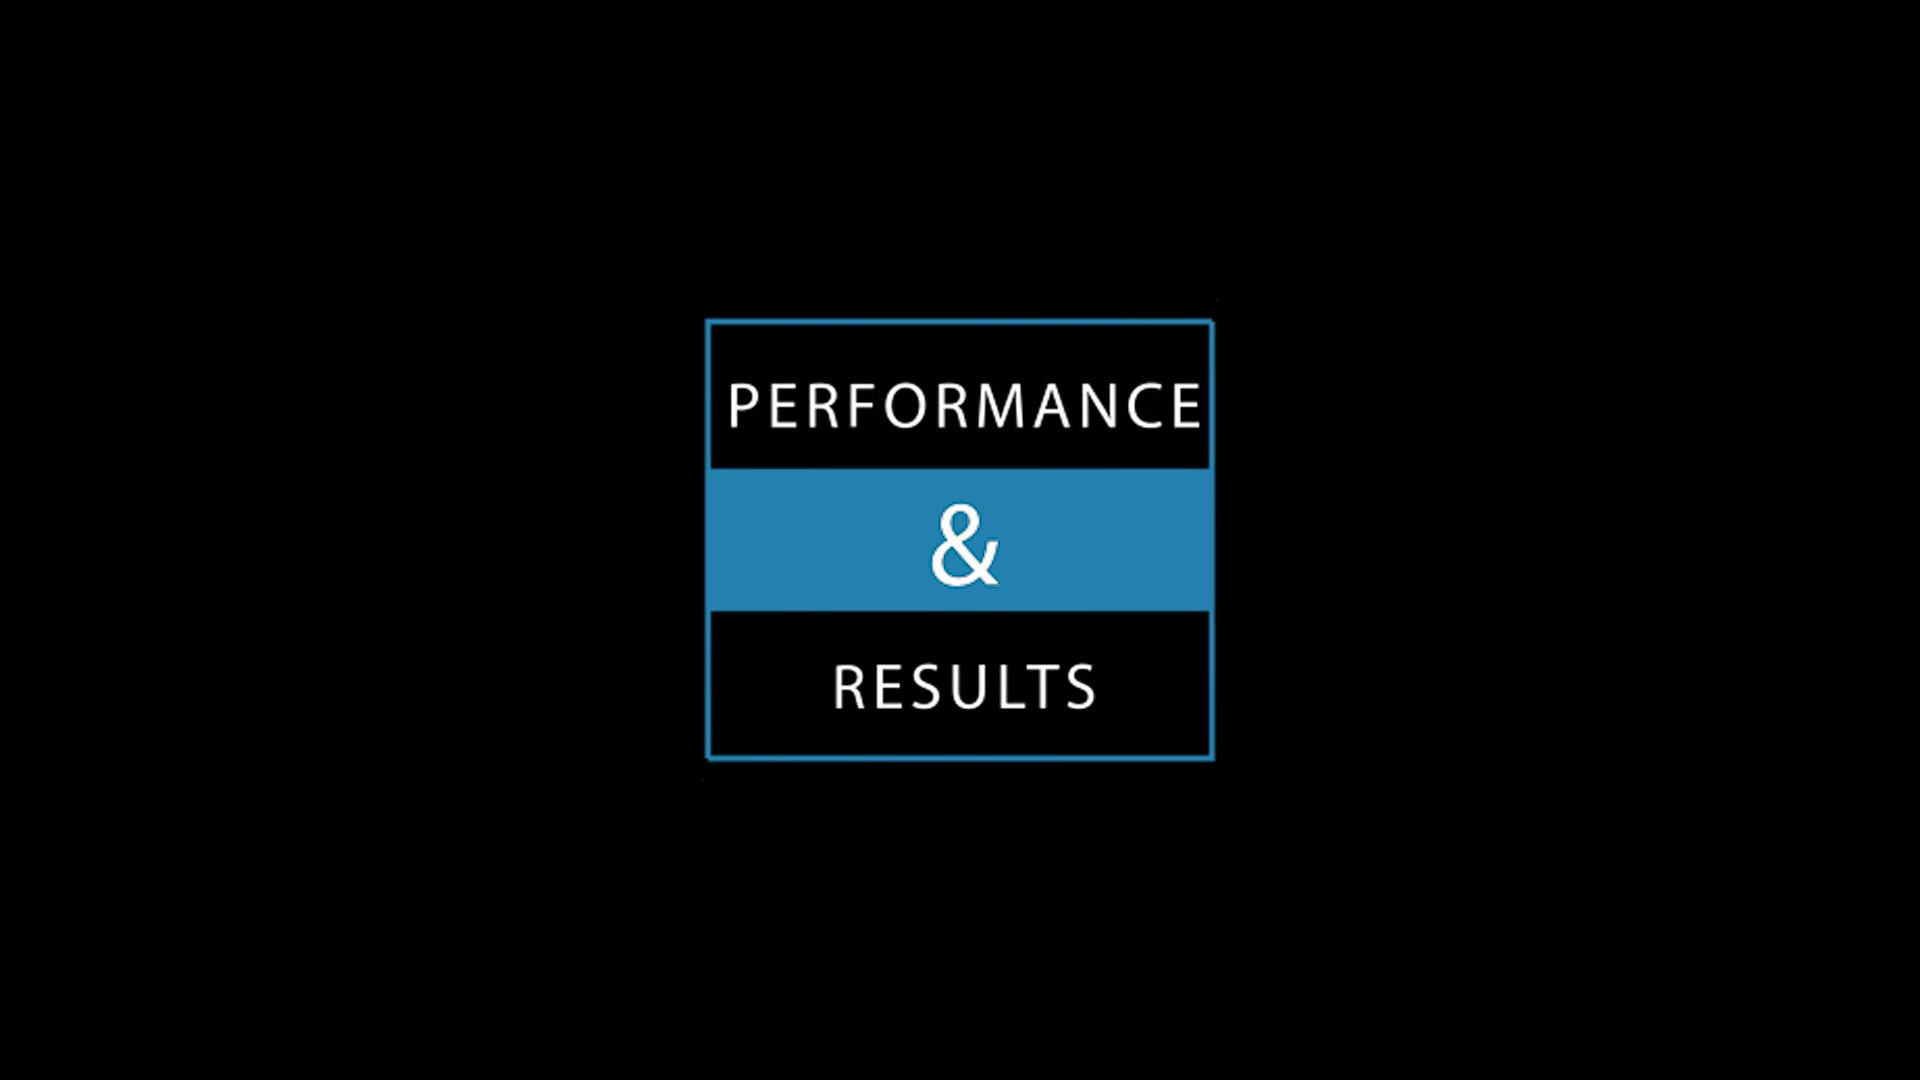 CC_020 Performance Results